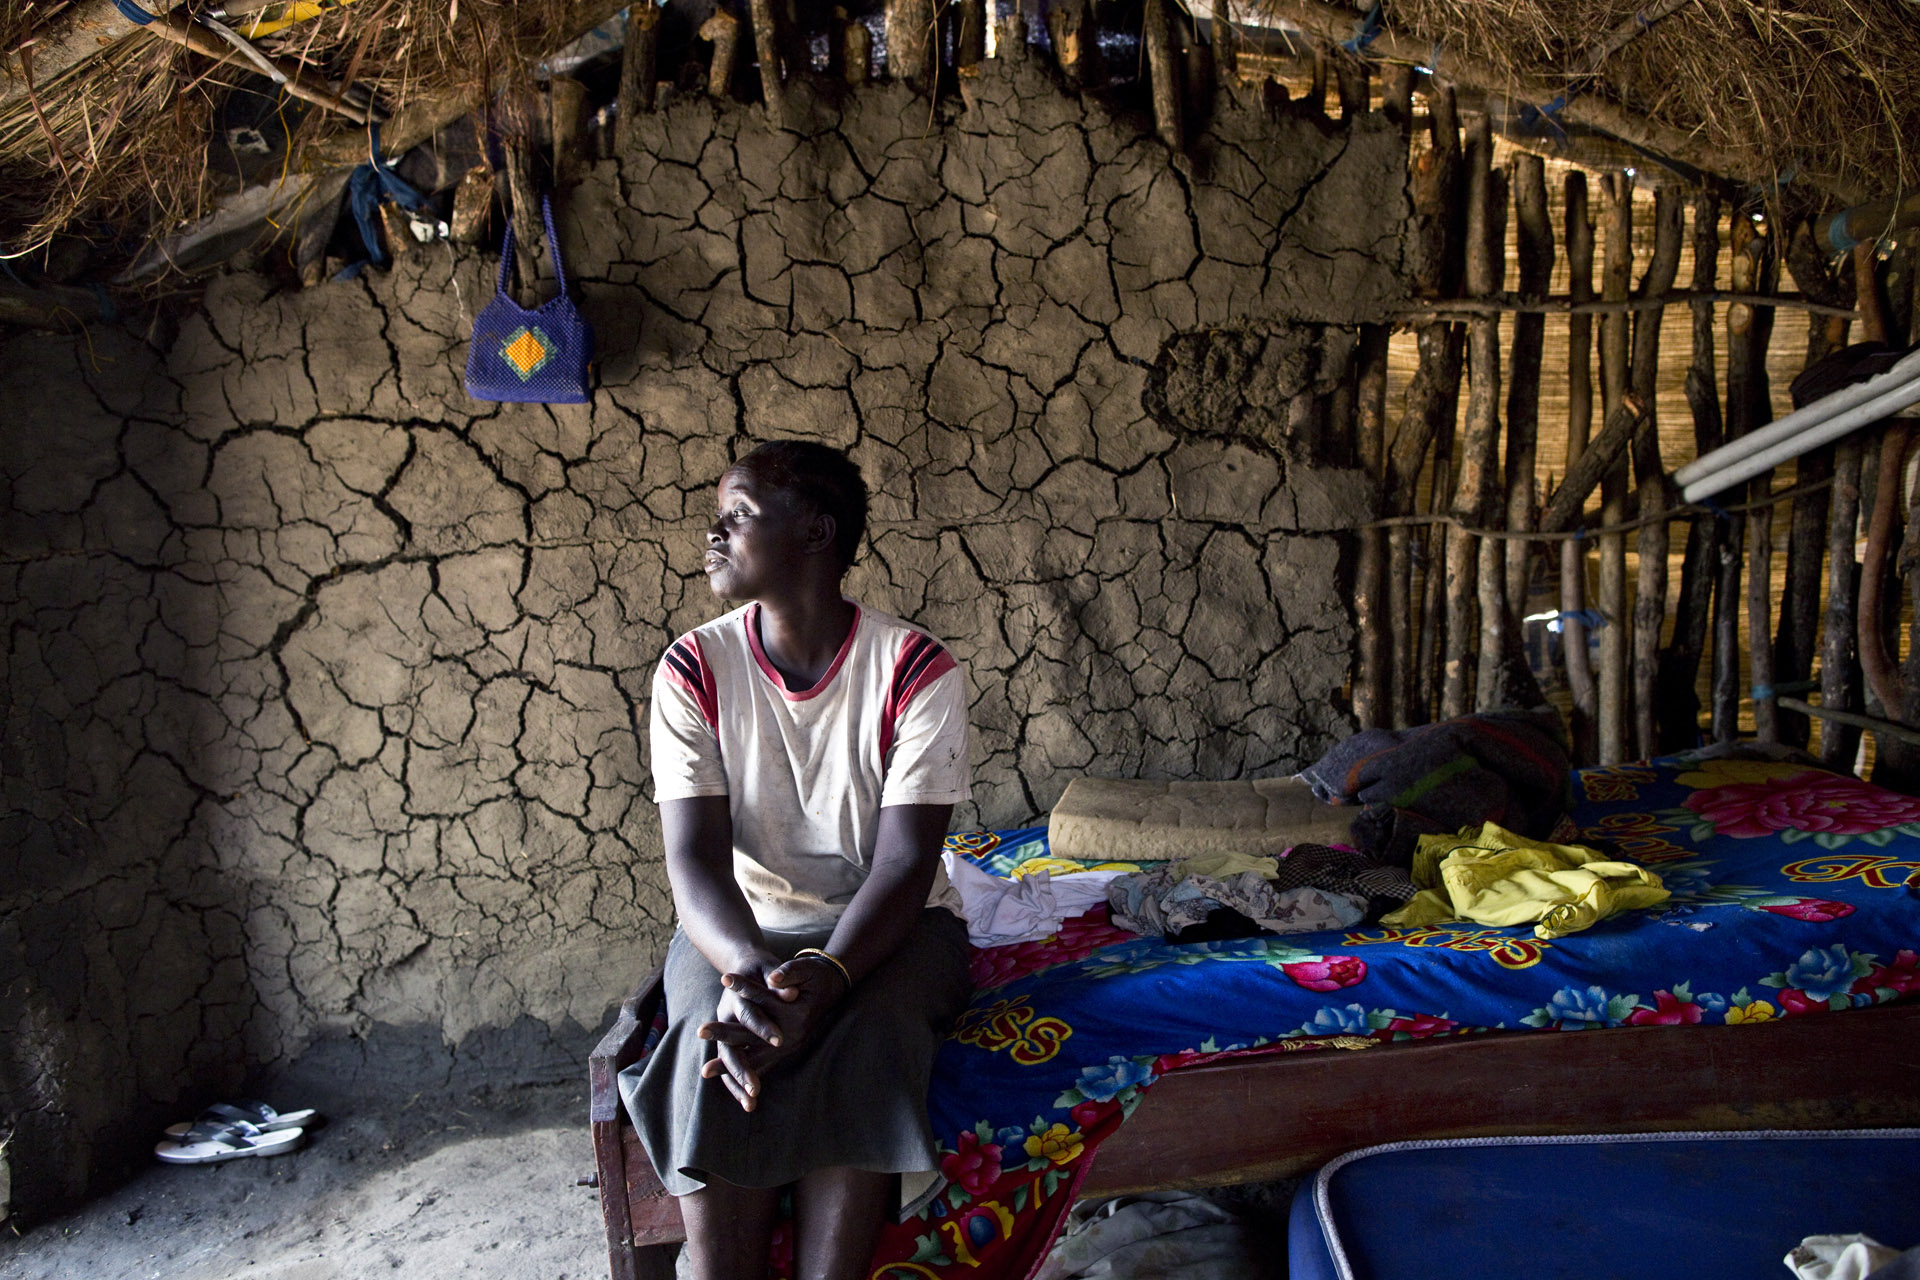 Refugee crisis in South Sudan